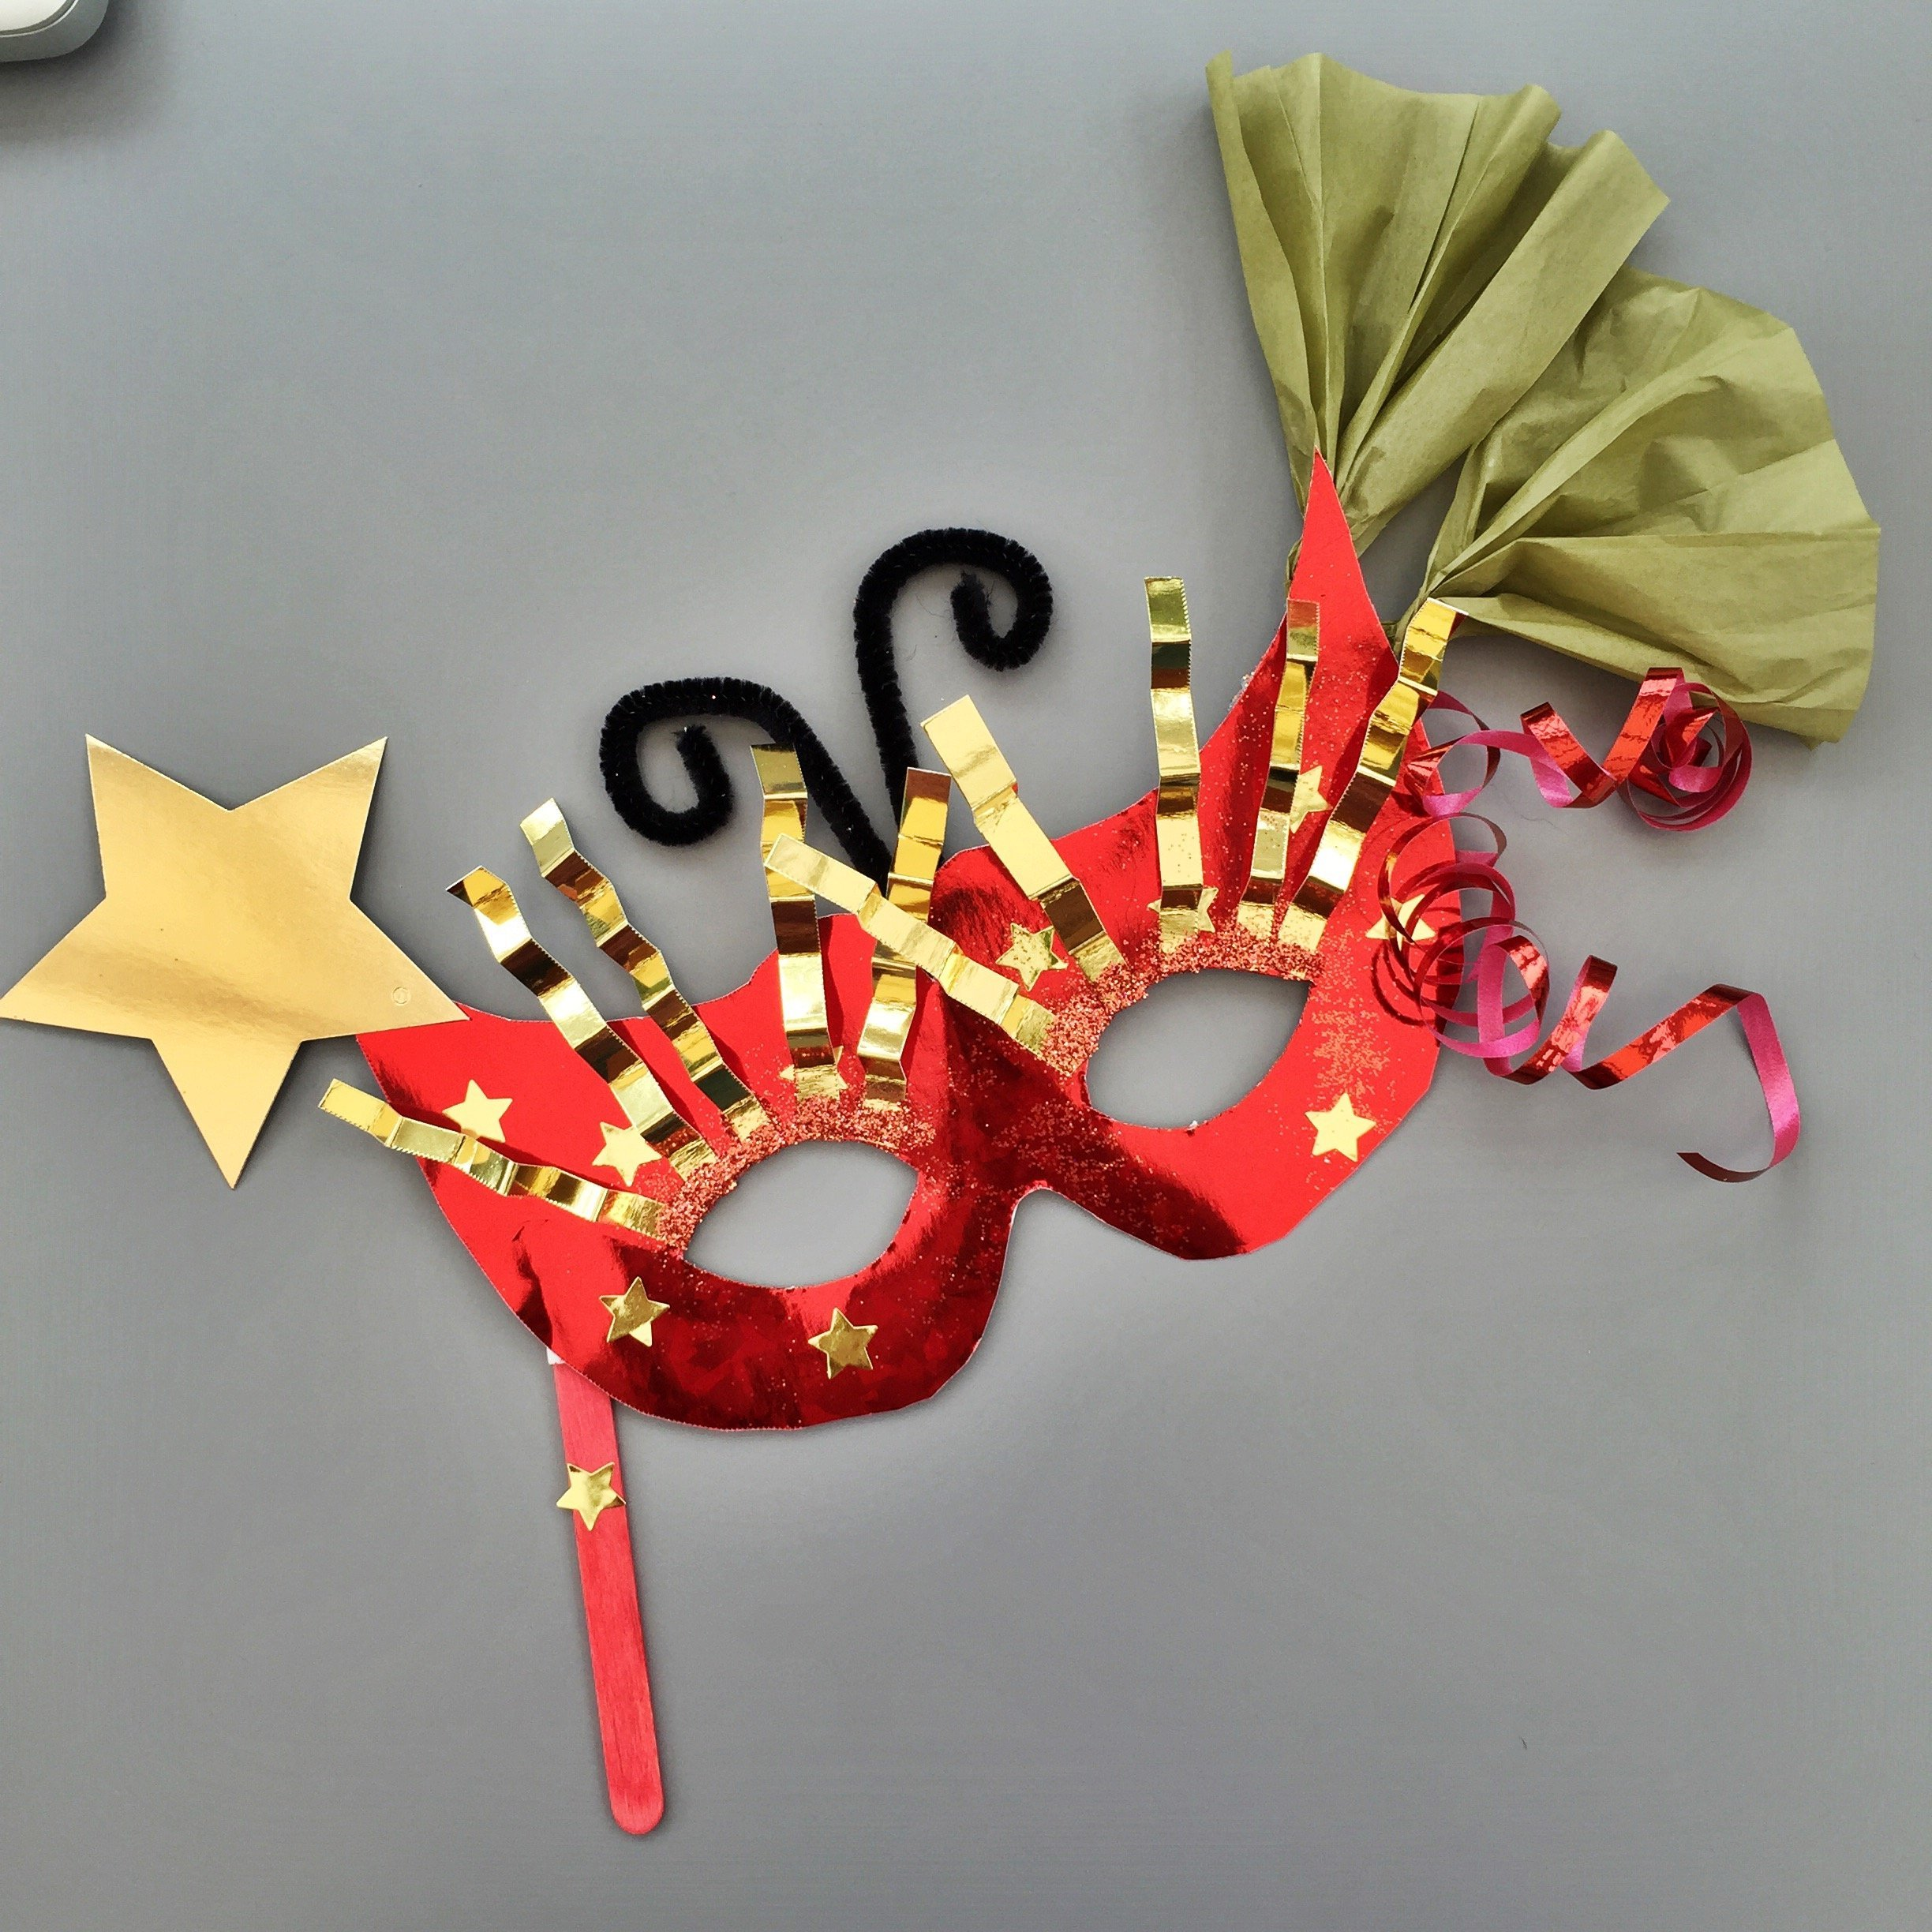 homemade kids carnival mask in red and gold decorated with stars, tissue paper fans, curly ribbon and gold eyelashes